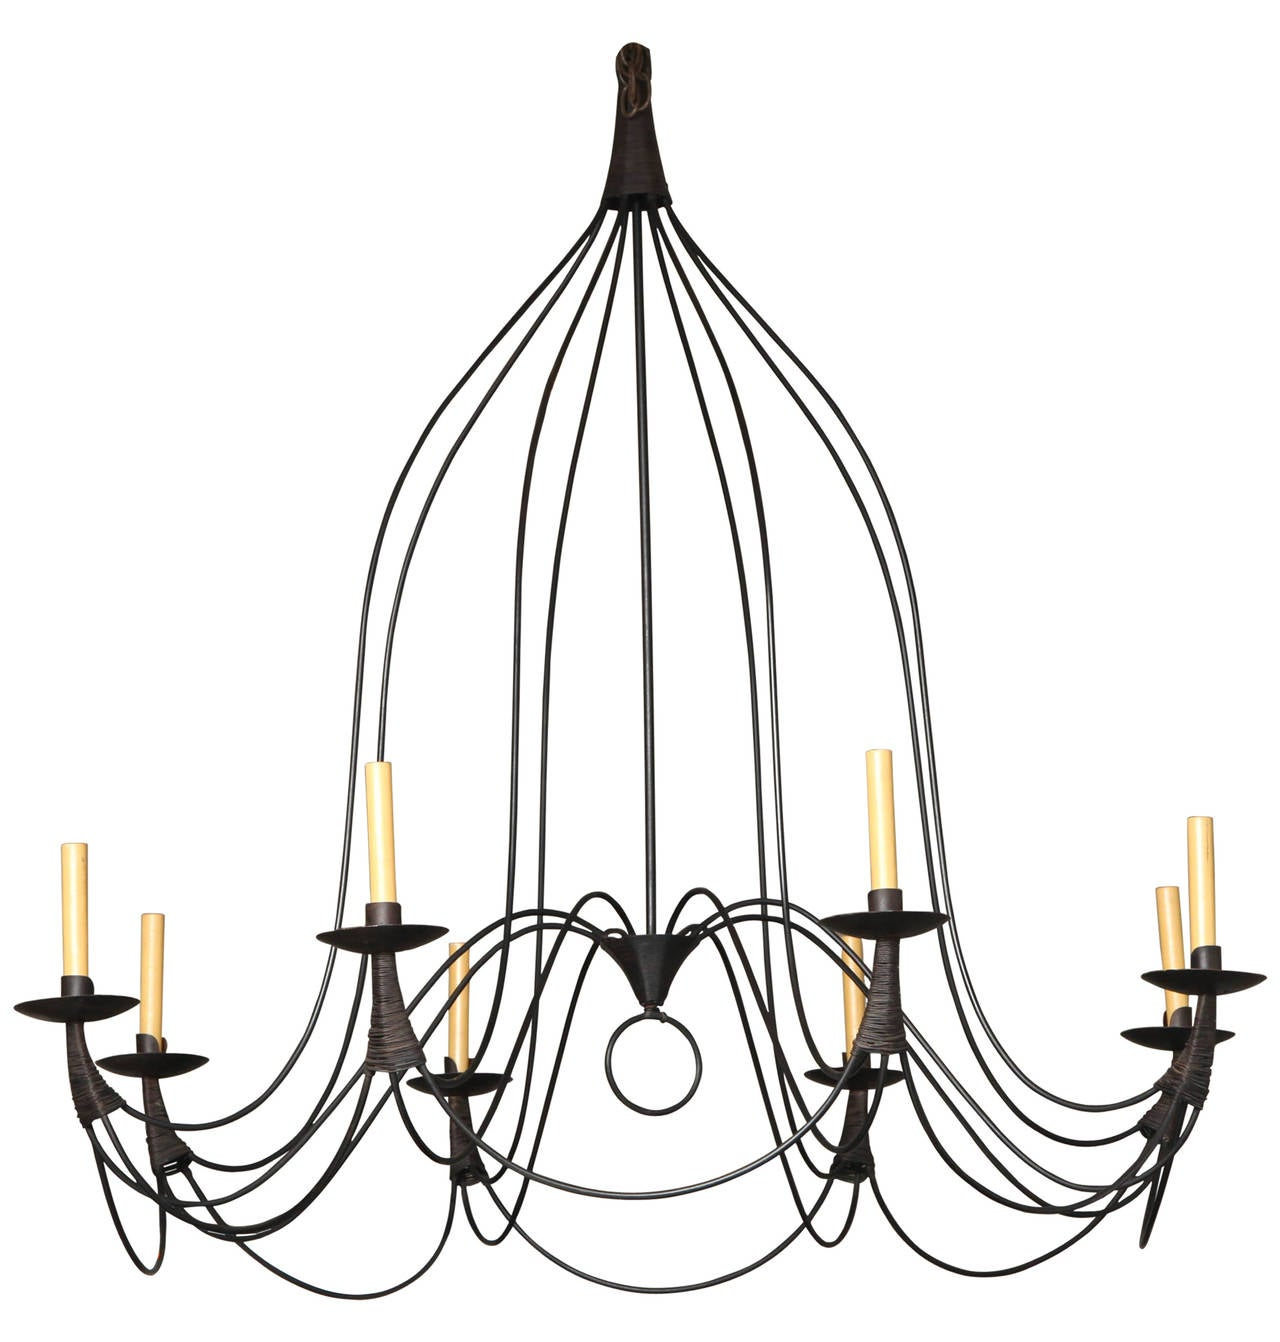 Midcentury Black Iron Eight Arm Chandelier at 1stdibs